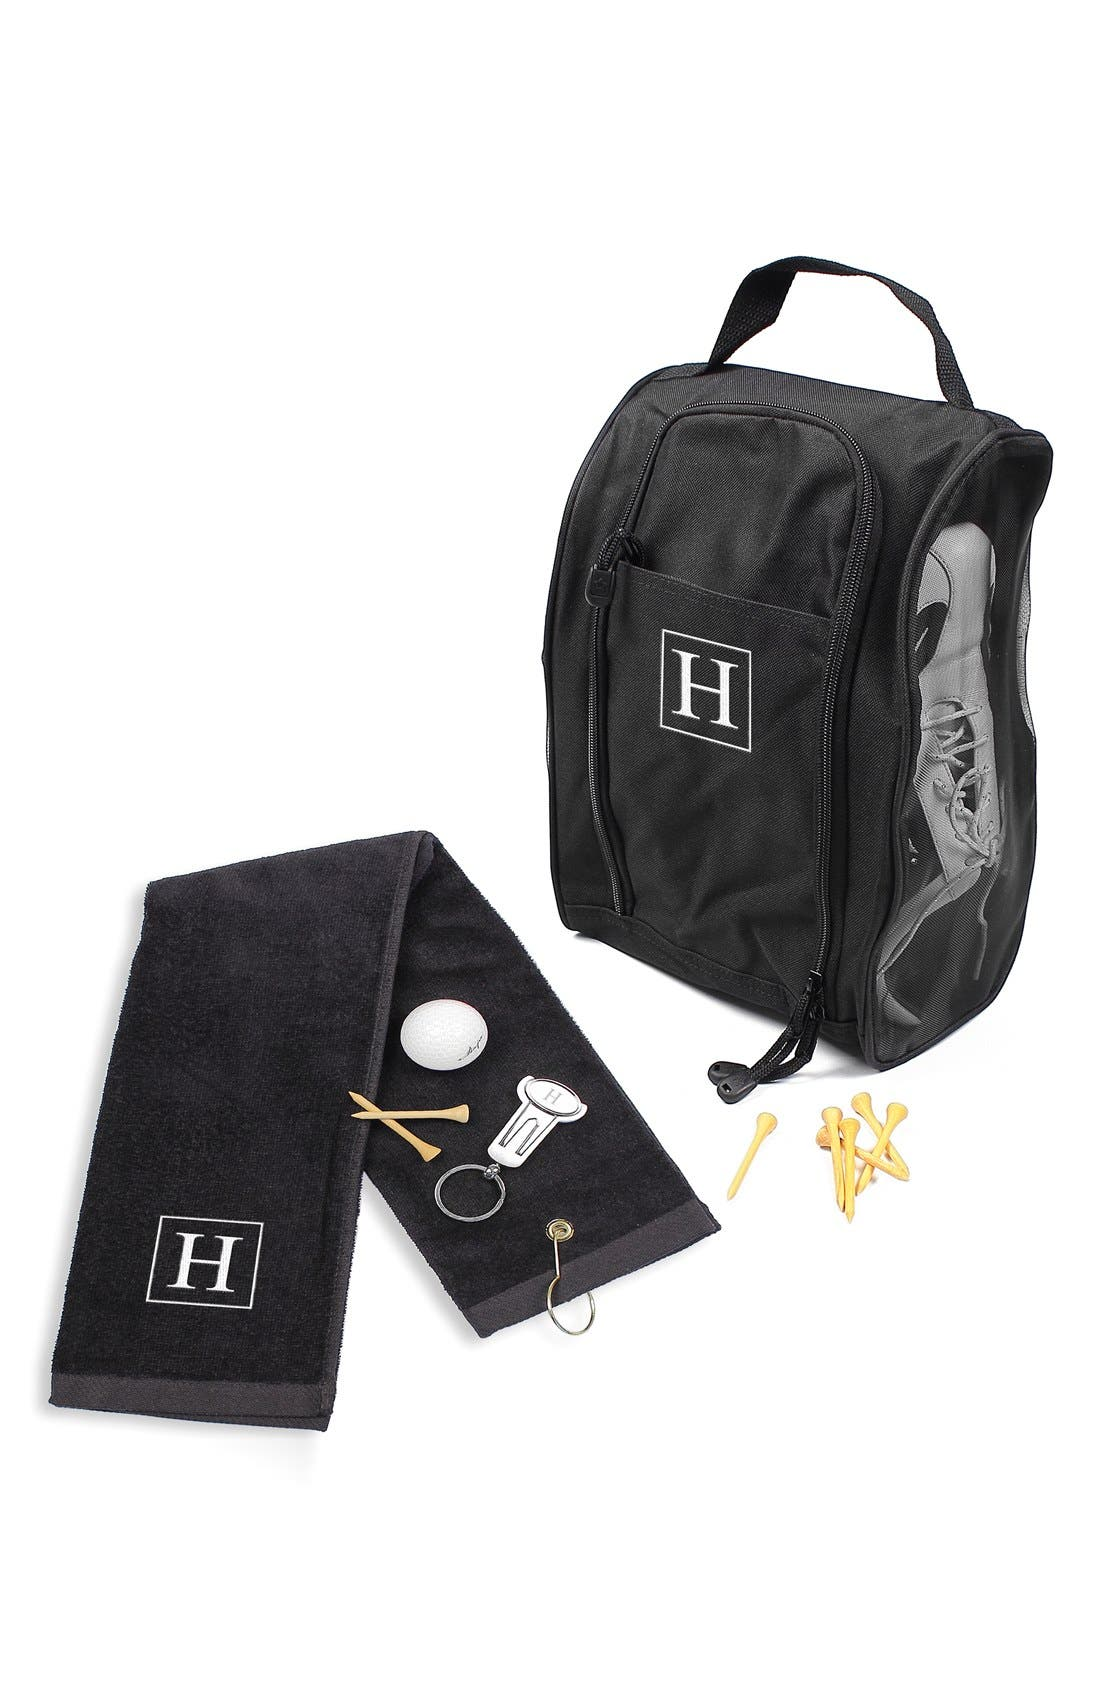 Monogram Golf Set,                             Main thumbnail 1, color,